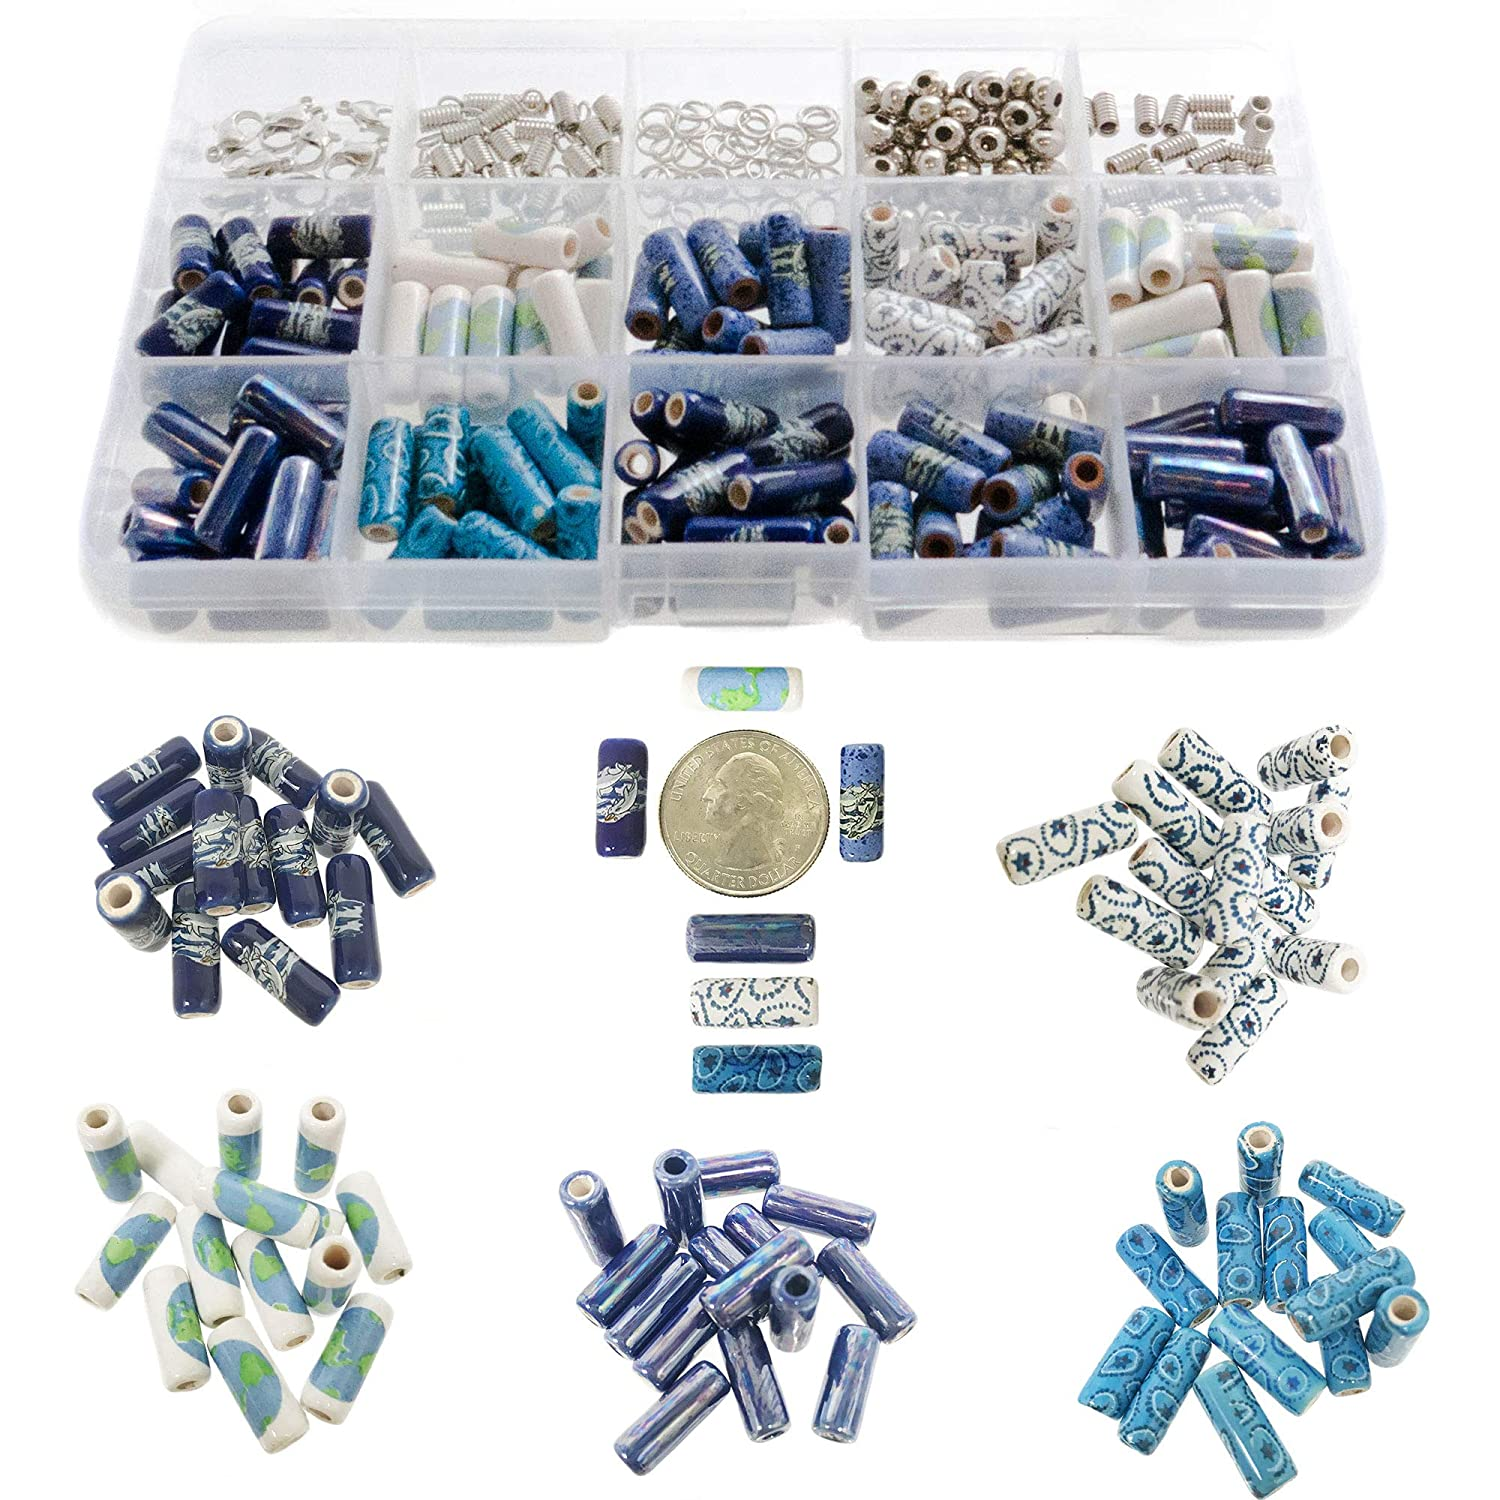 150 PCs Porcelain Ceramic Beads for Jewelry Making DIY Kit with 5 Meters  Genuine Greek Leather Cord, Free Leather Necklace - Includes Metal Spacer